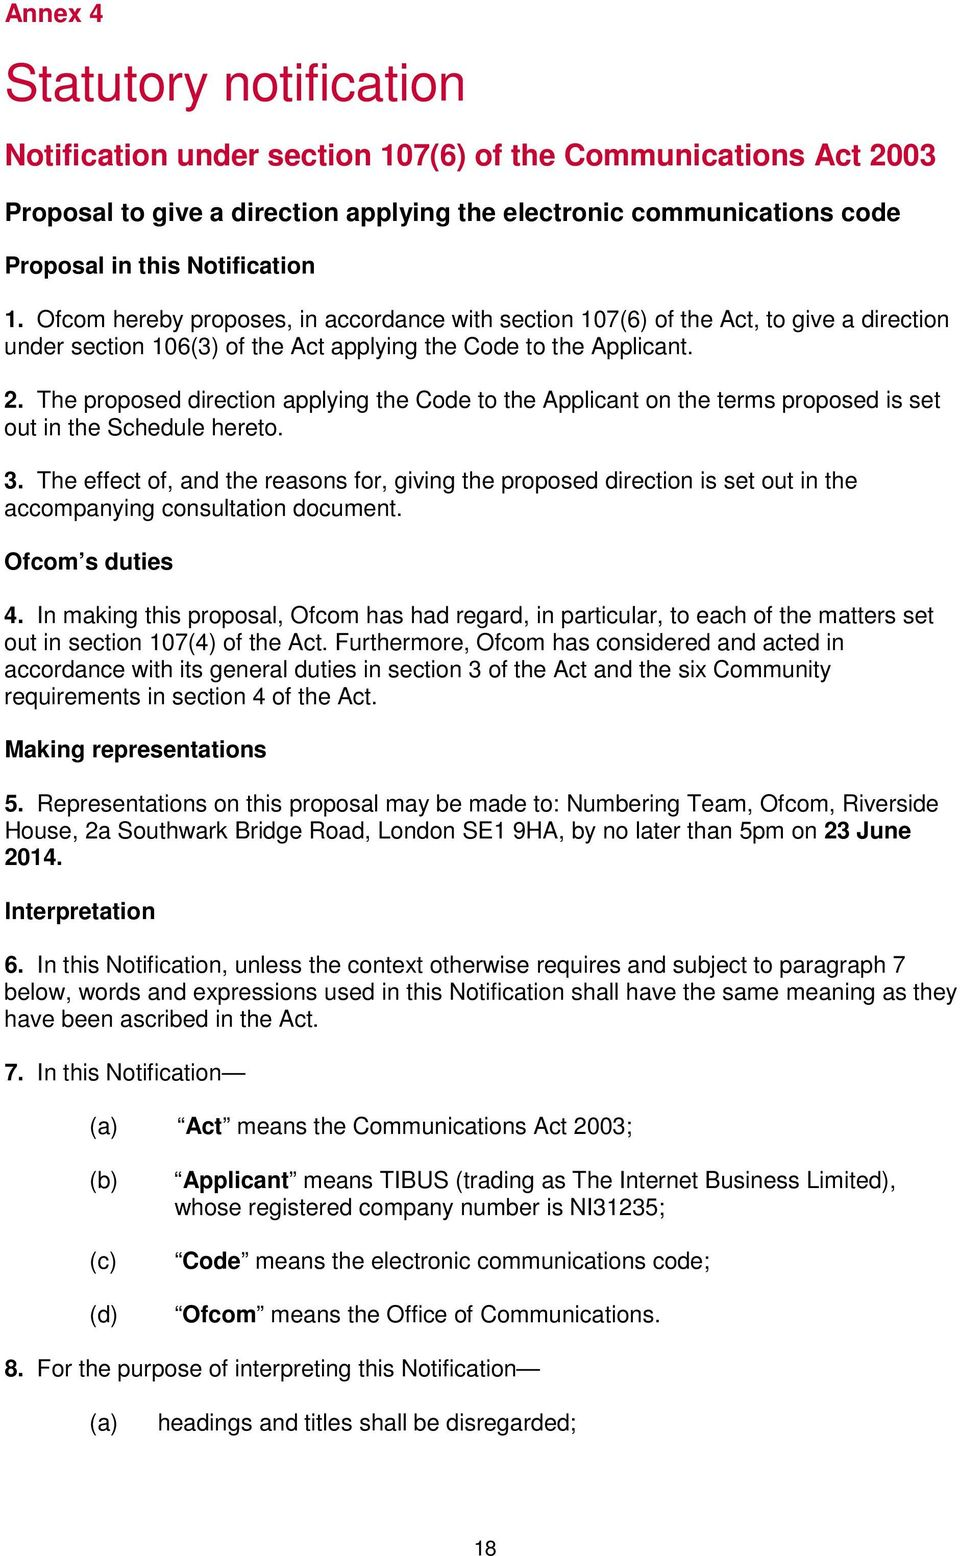 The proposed direction applying the Code to the Applicant on the terms proposed is set out in the Schedule hereto. 3.